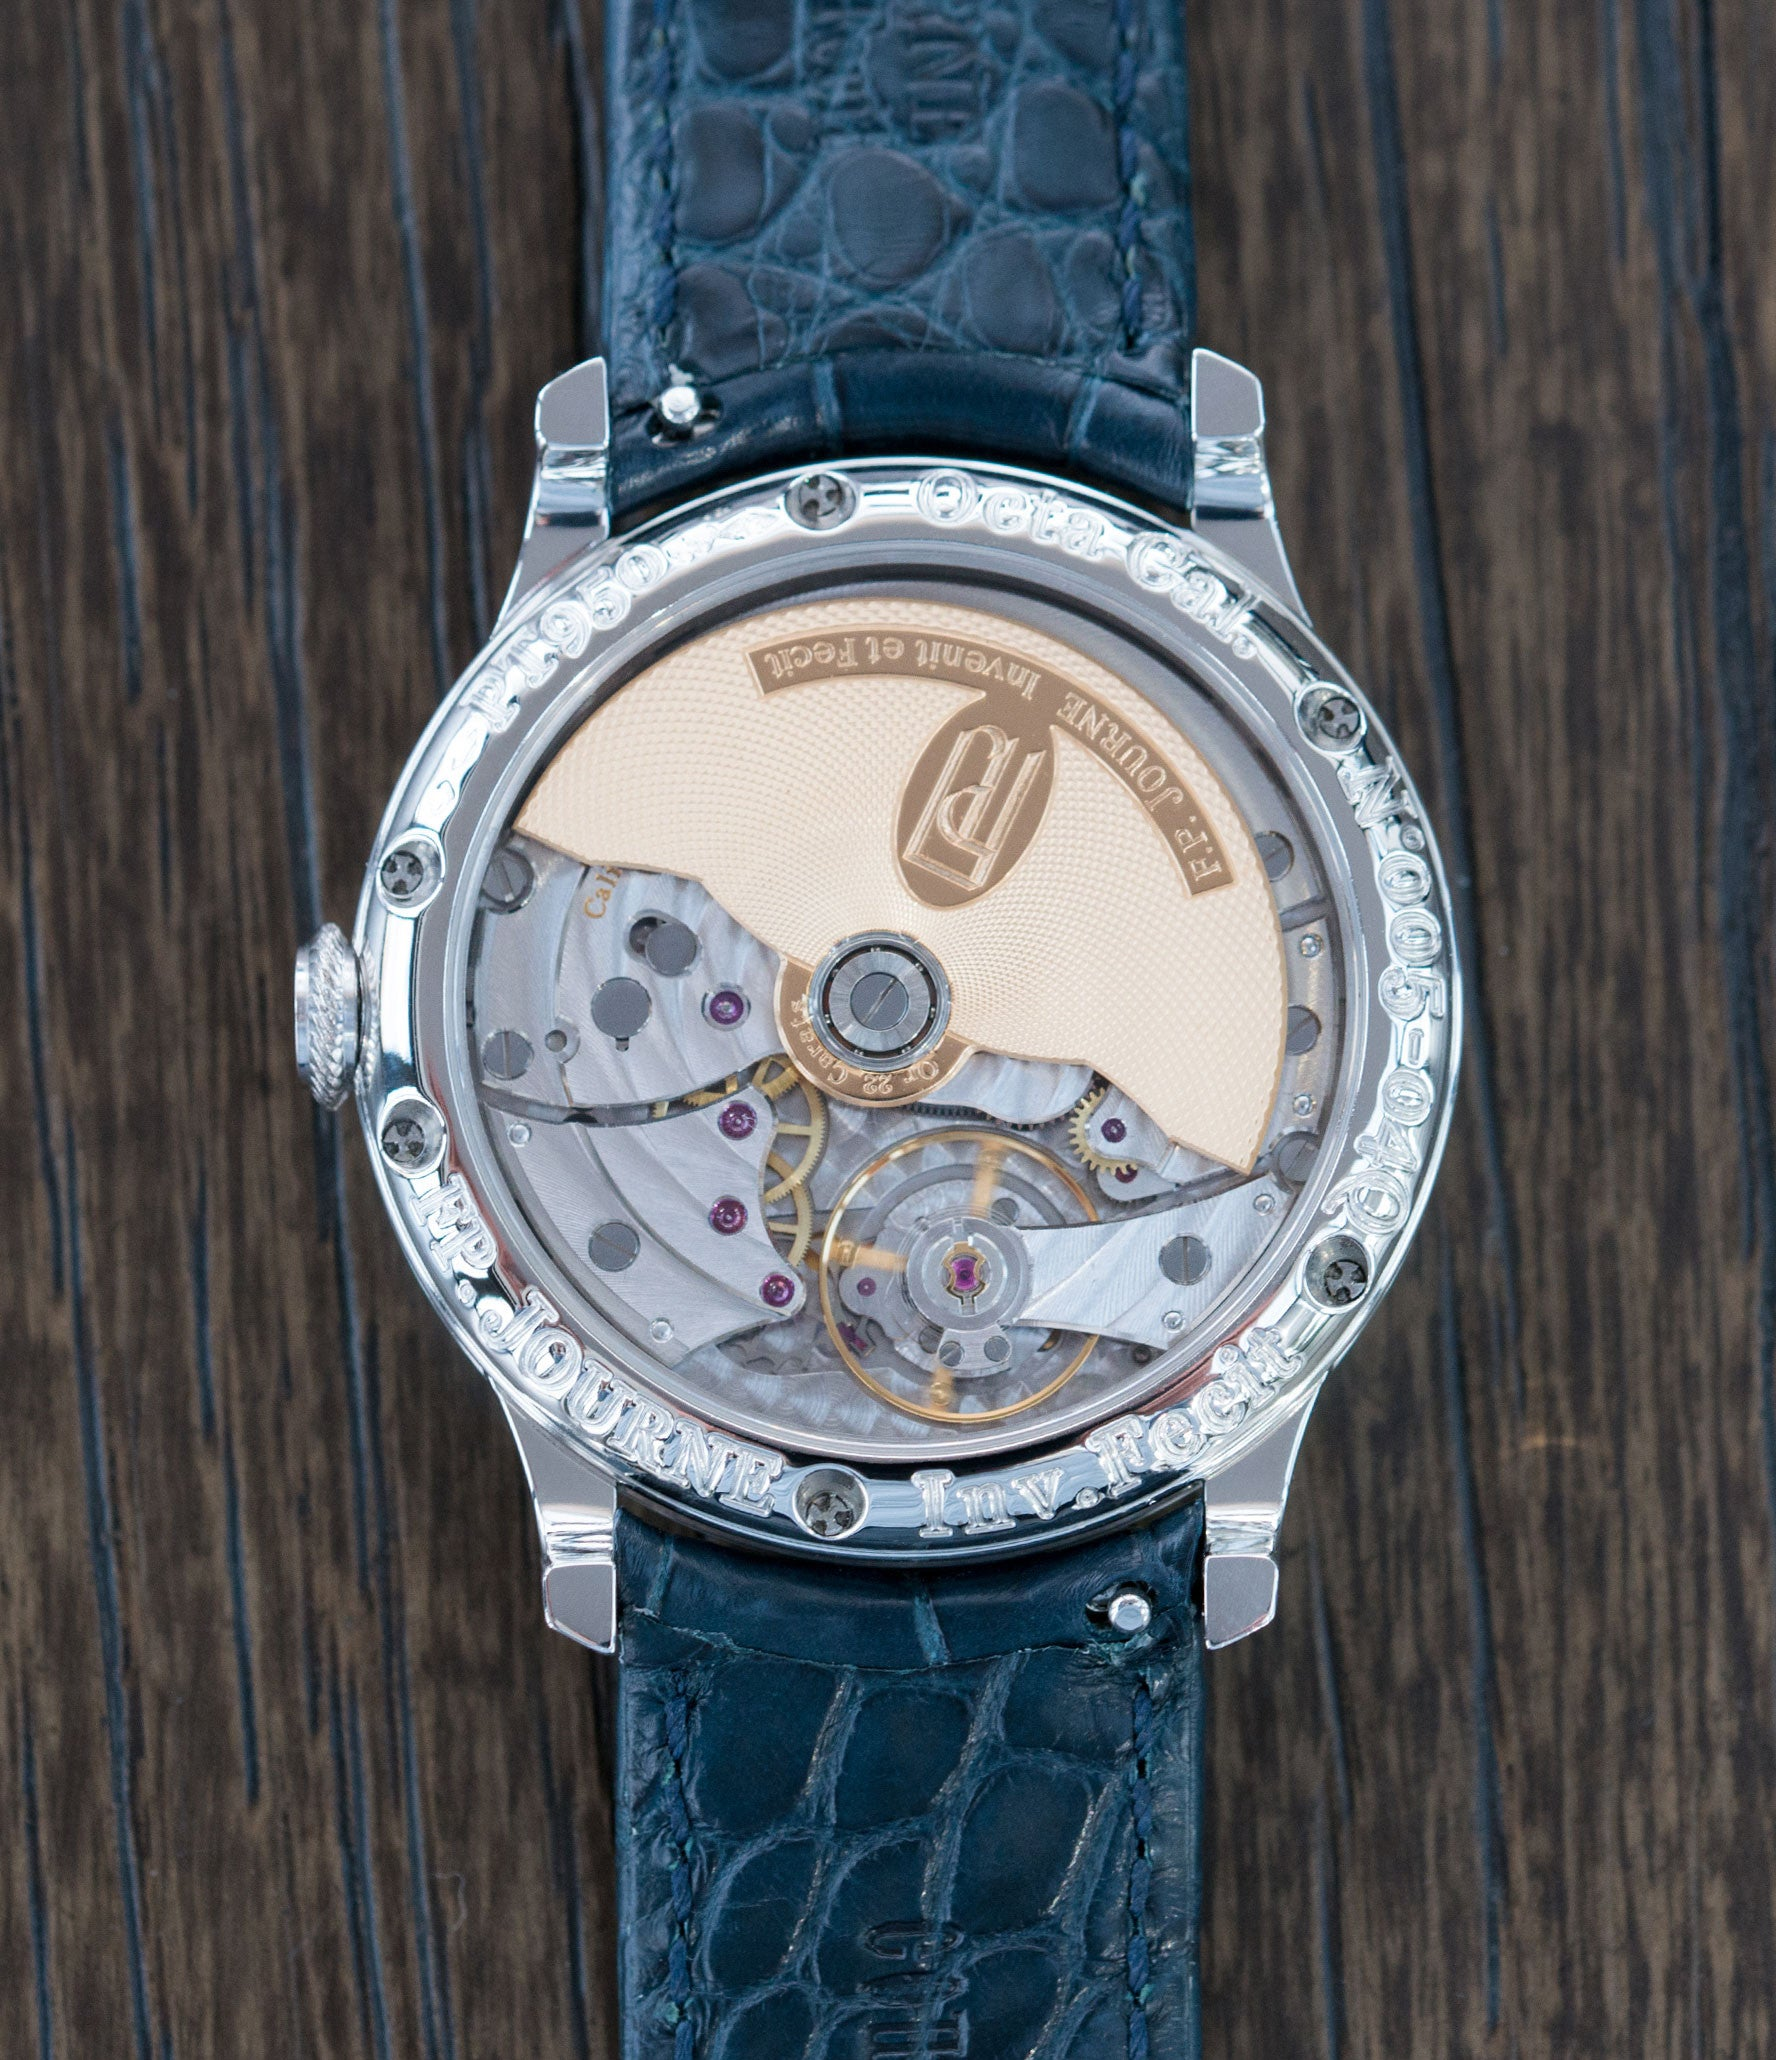 buy brass movement F. P. Journe Octa Calendrier early 38mm platinum full set preowned dress luxury watch for sale online at A Collected Man London independent watch specialist